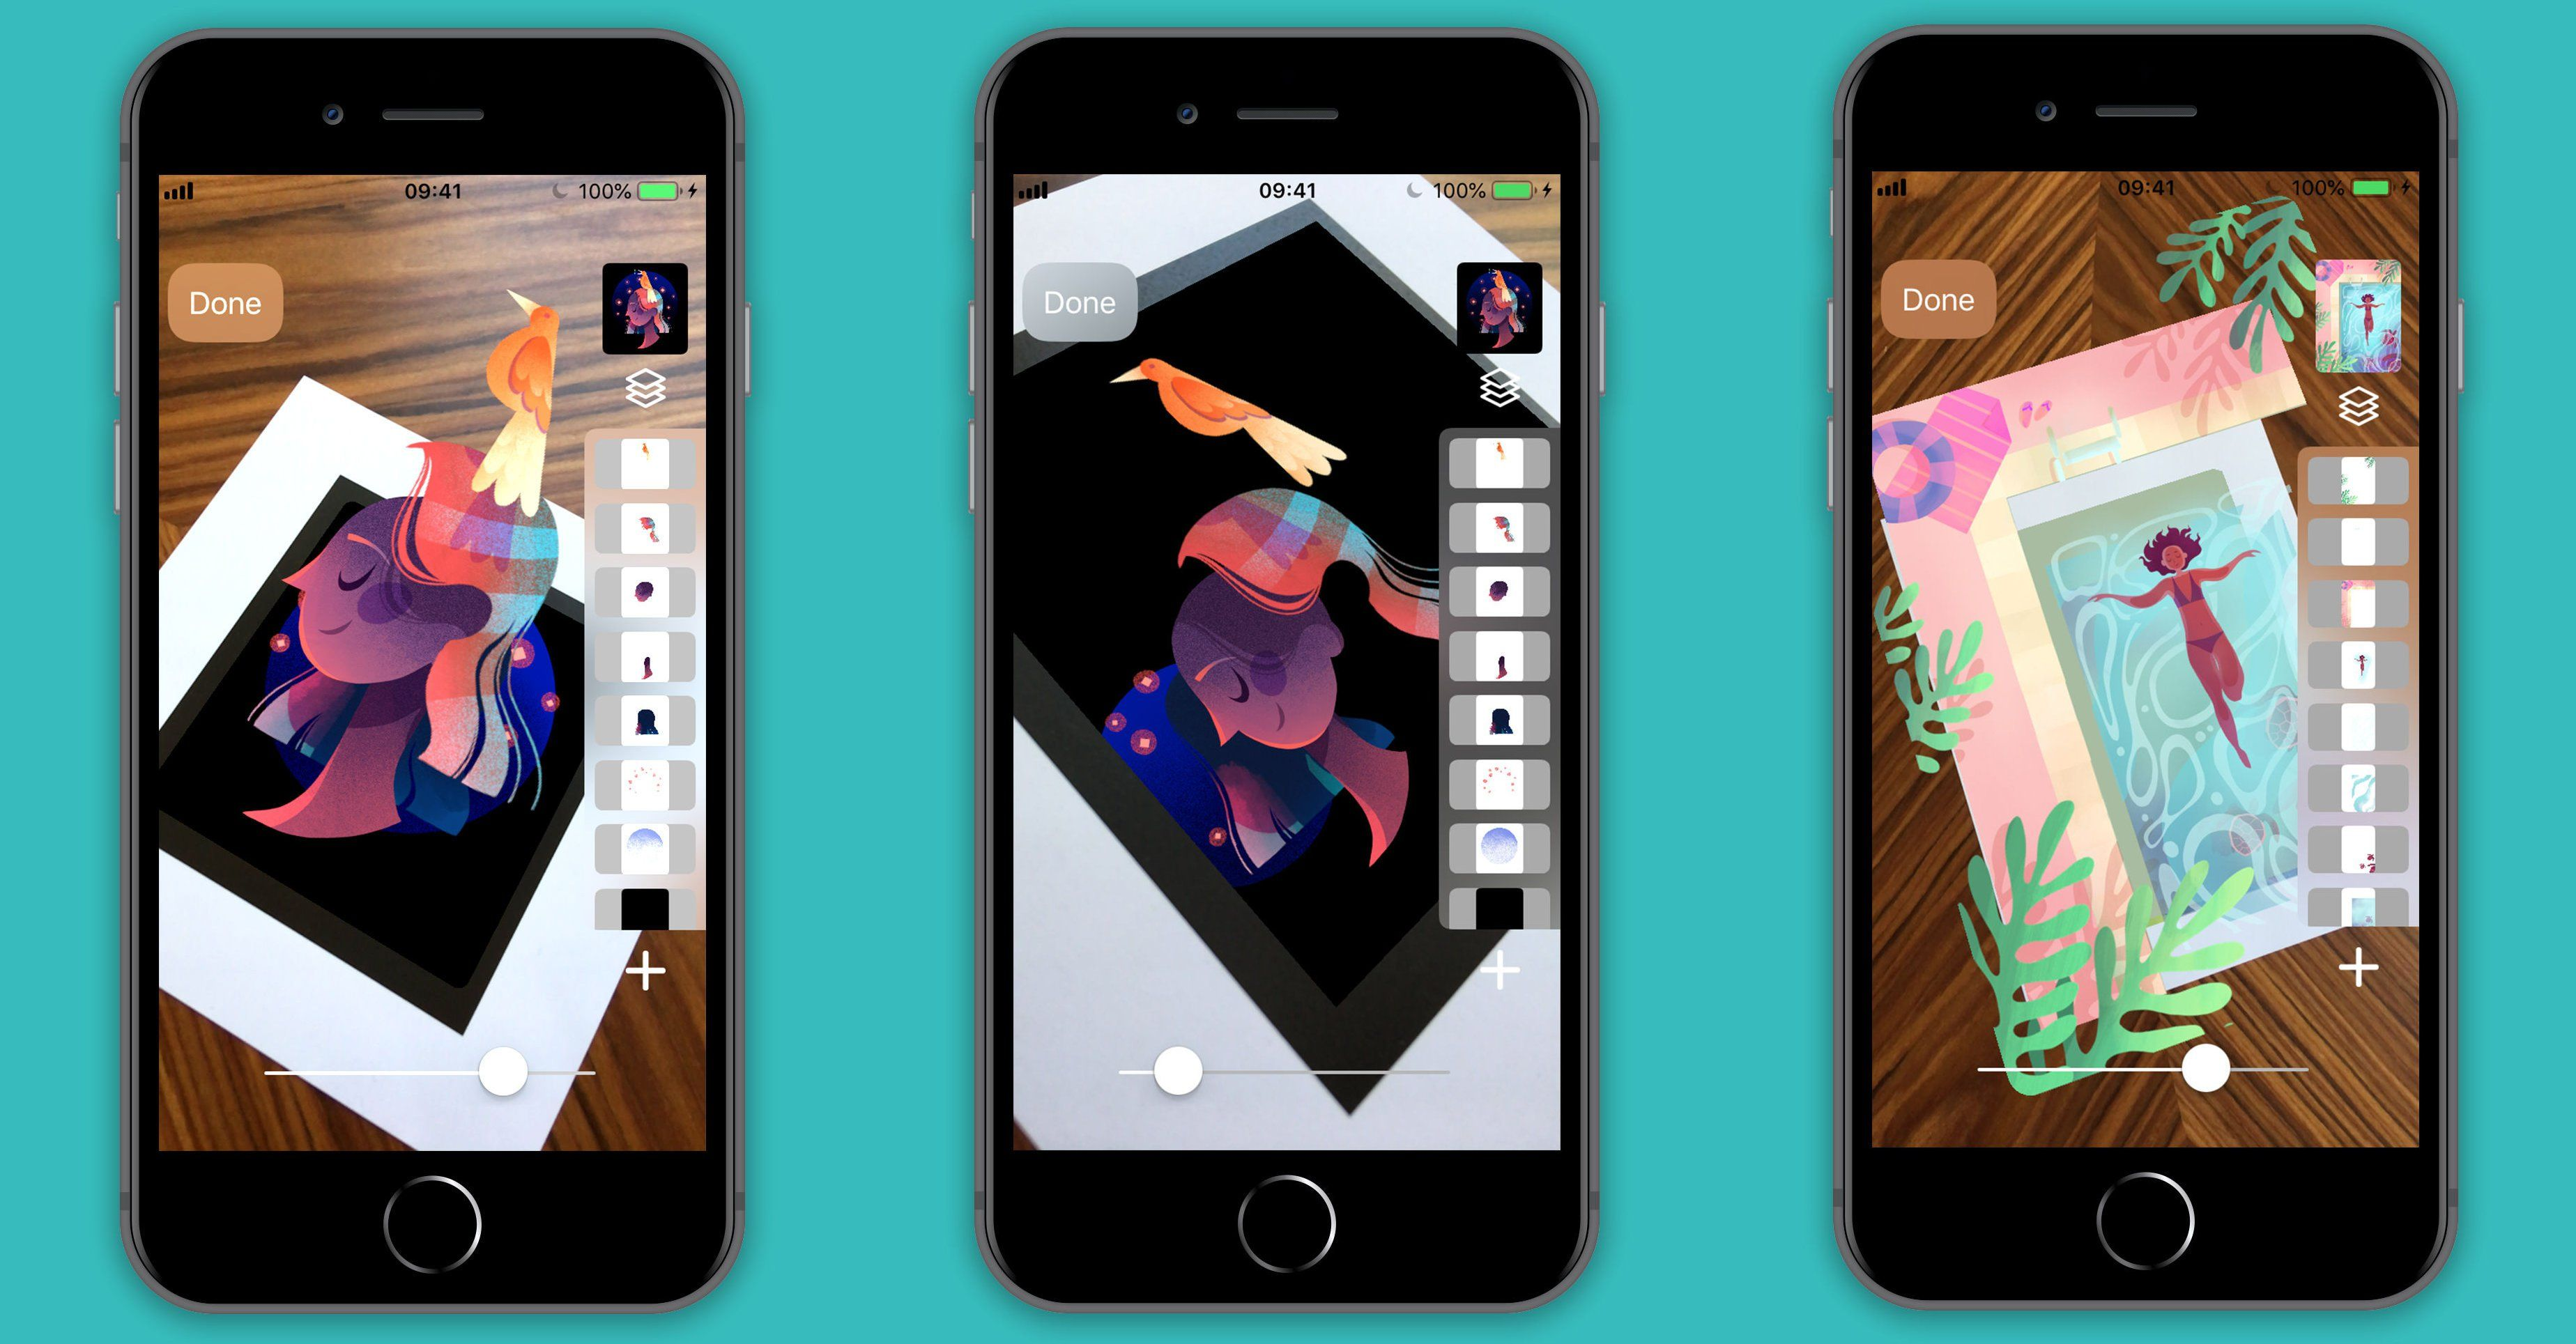 Bring your layered art to life in slide ar with images